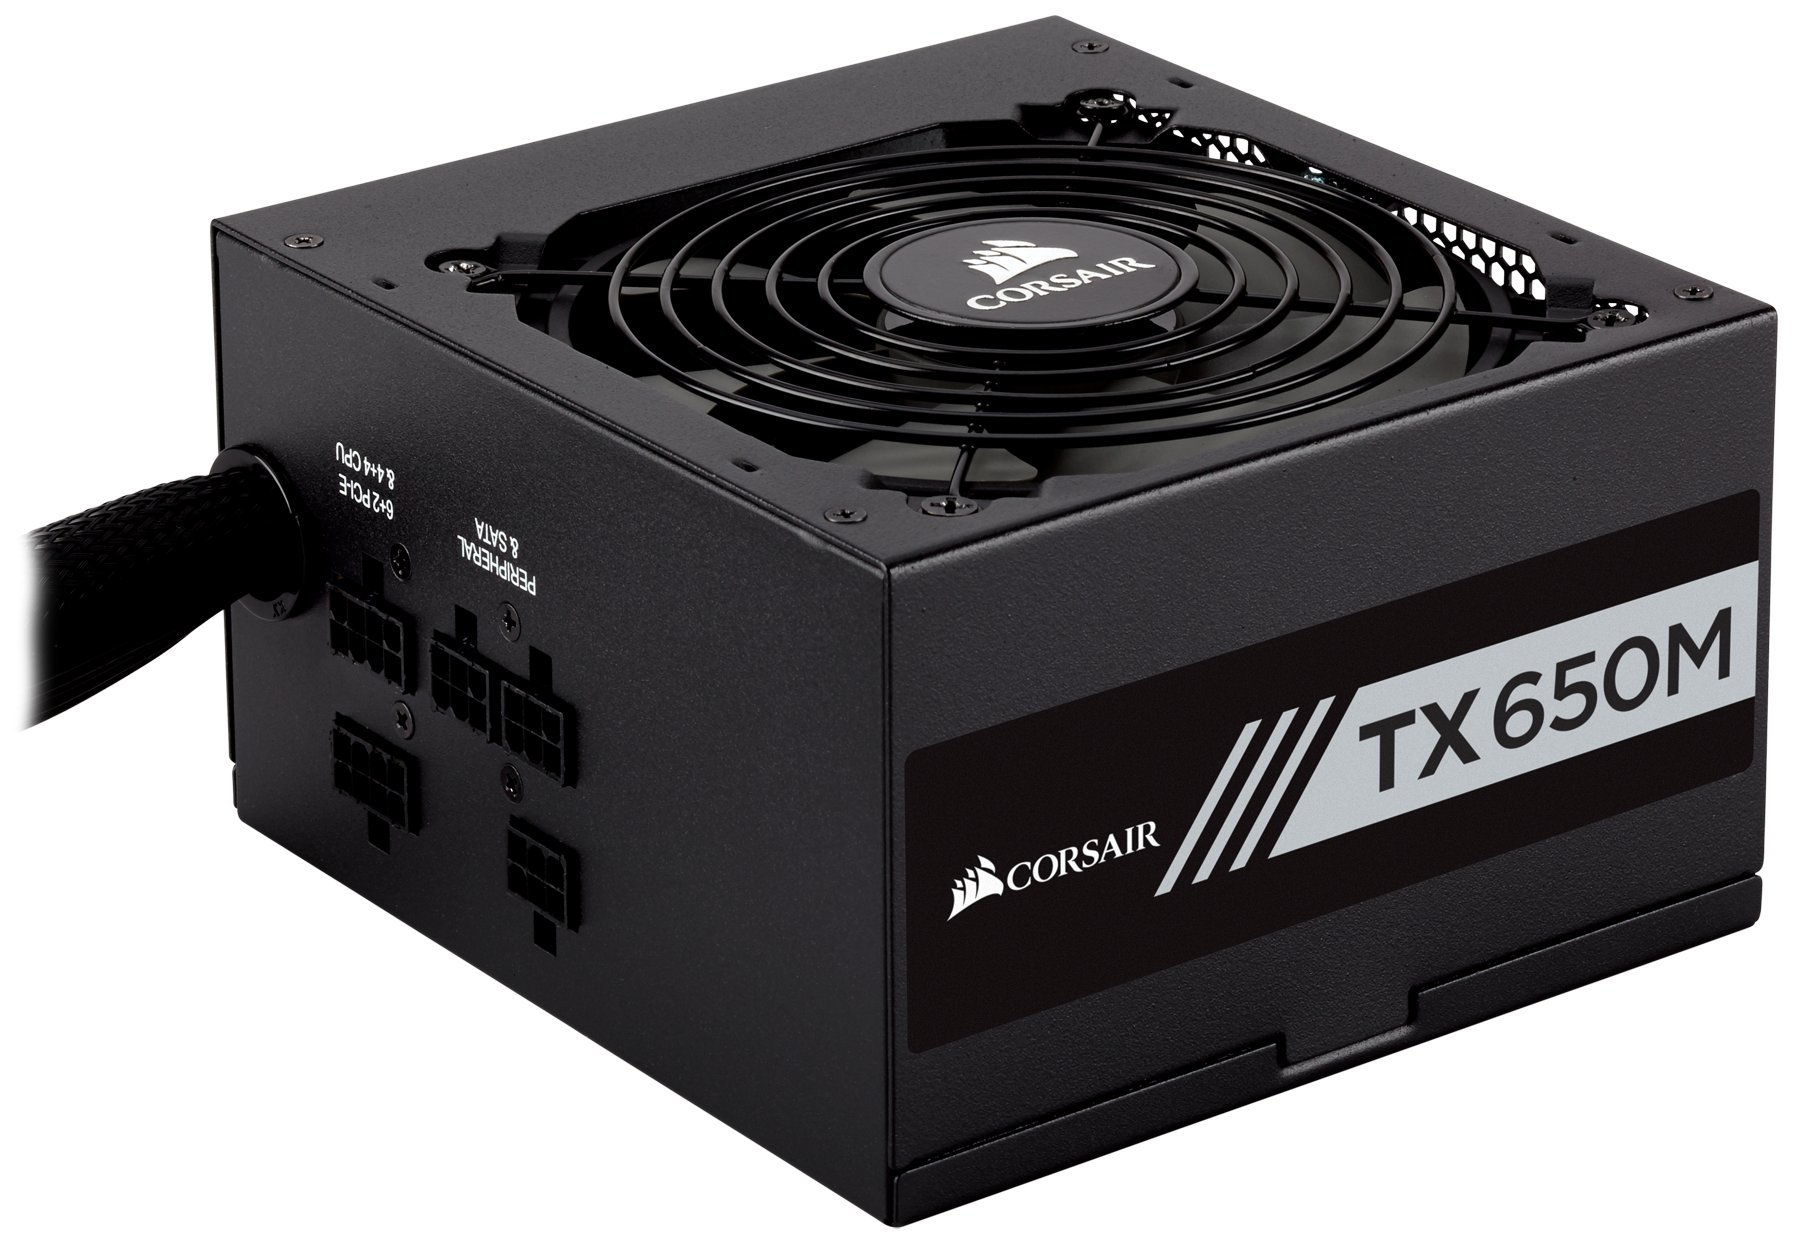 CORSAIR TX Series TX650M 650W 80+ Gold Modular Power Supply by Corsair